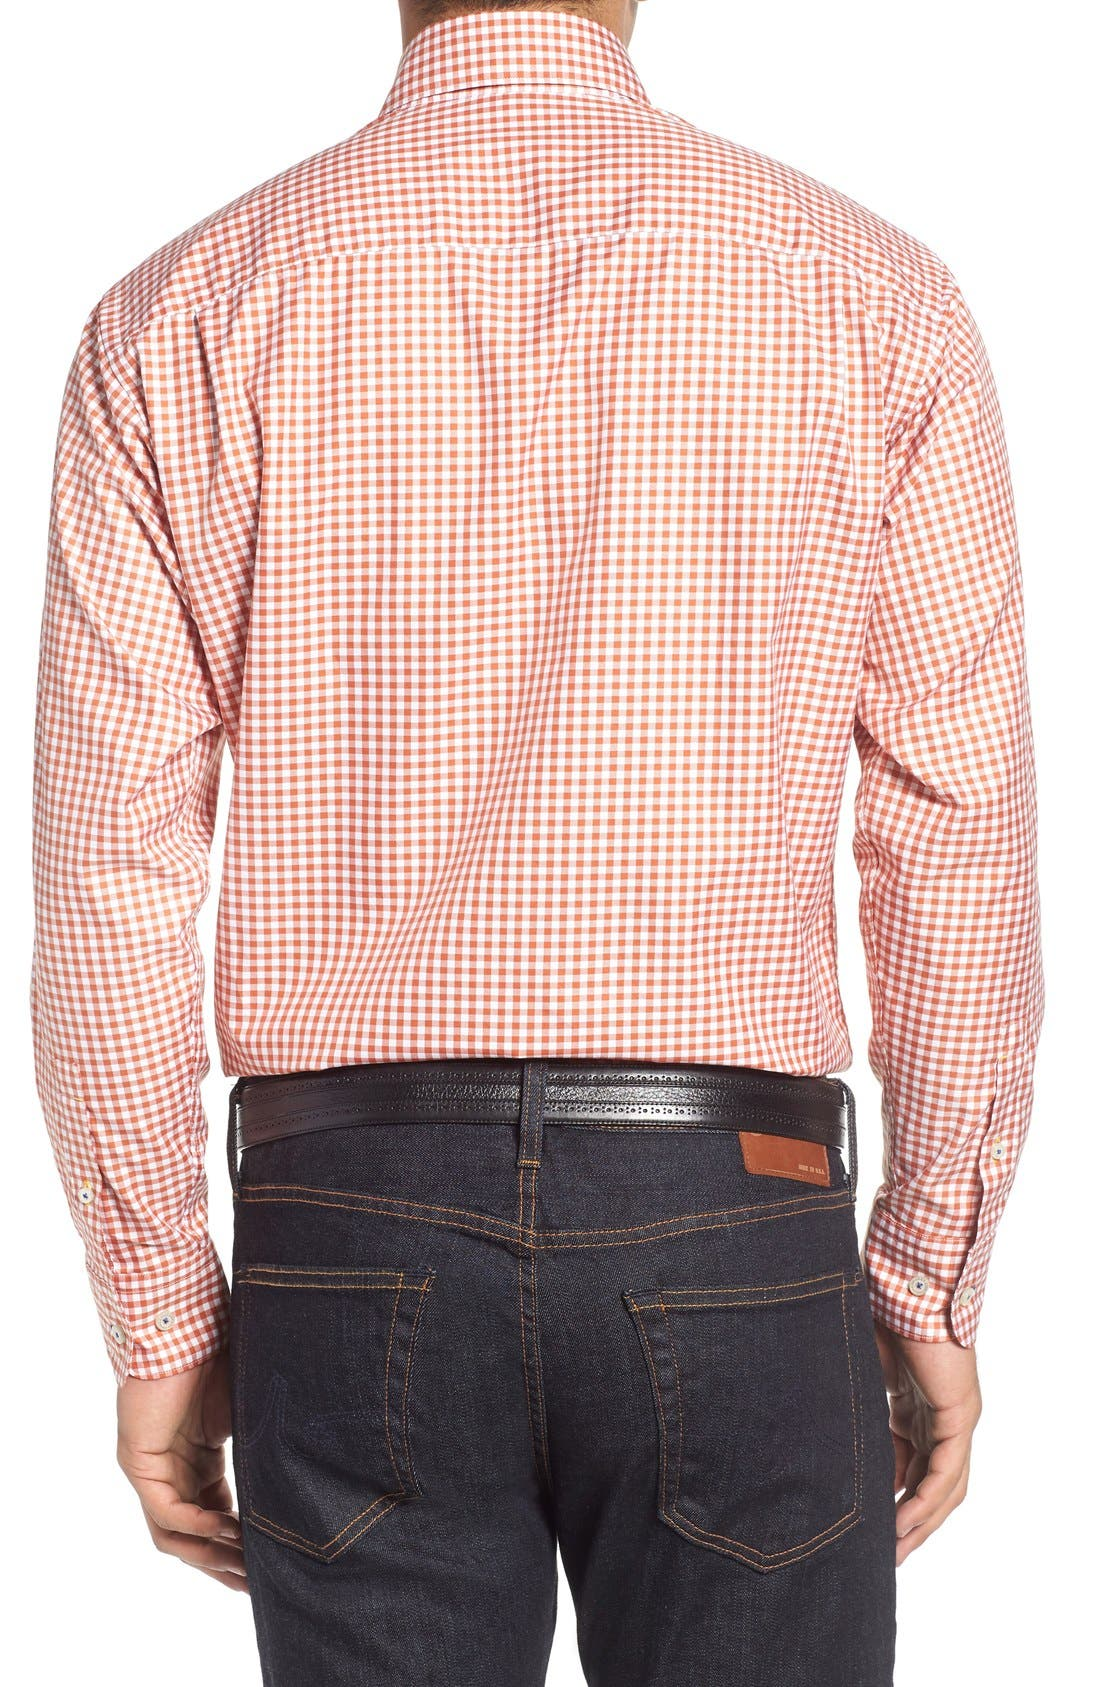 'Anderson' Classic Fit Gingham Sport Shirt,                             Alternate thumbnail 2, color,                             EMBER